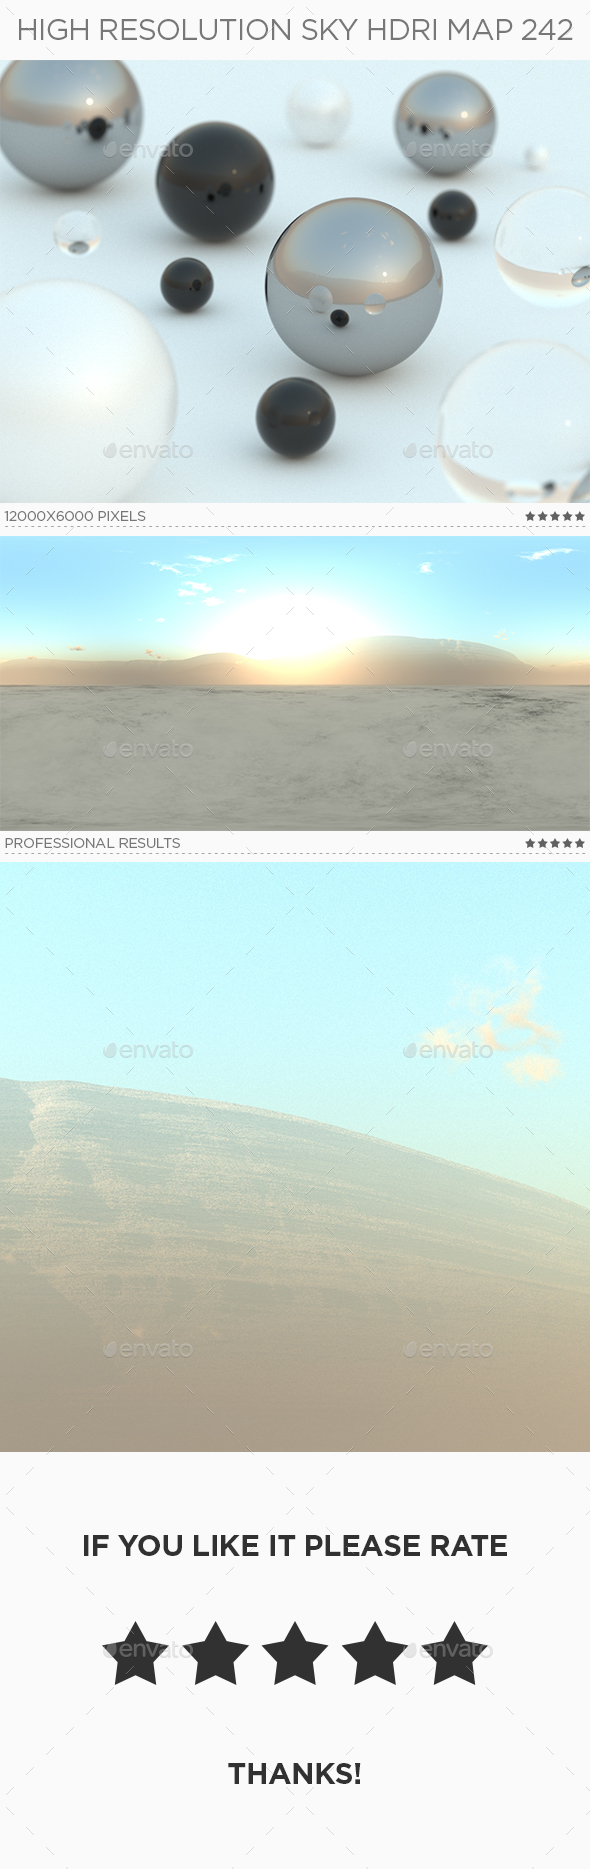 High Resolution Sky HDRi Map 242 - 3DOcean Item for Sale